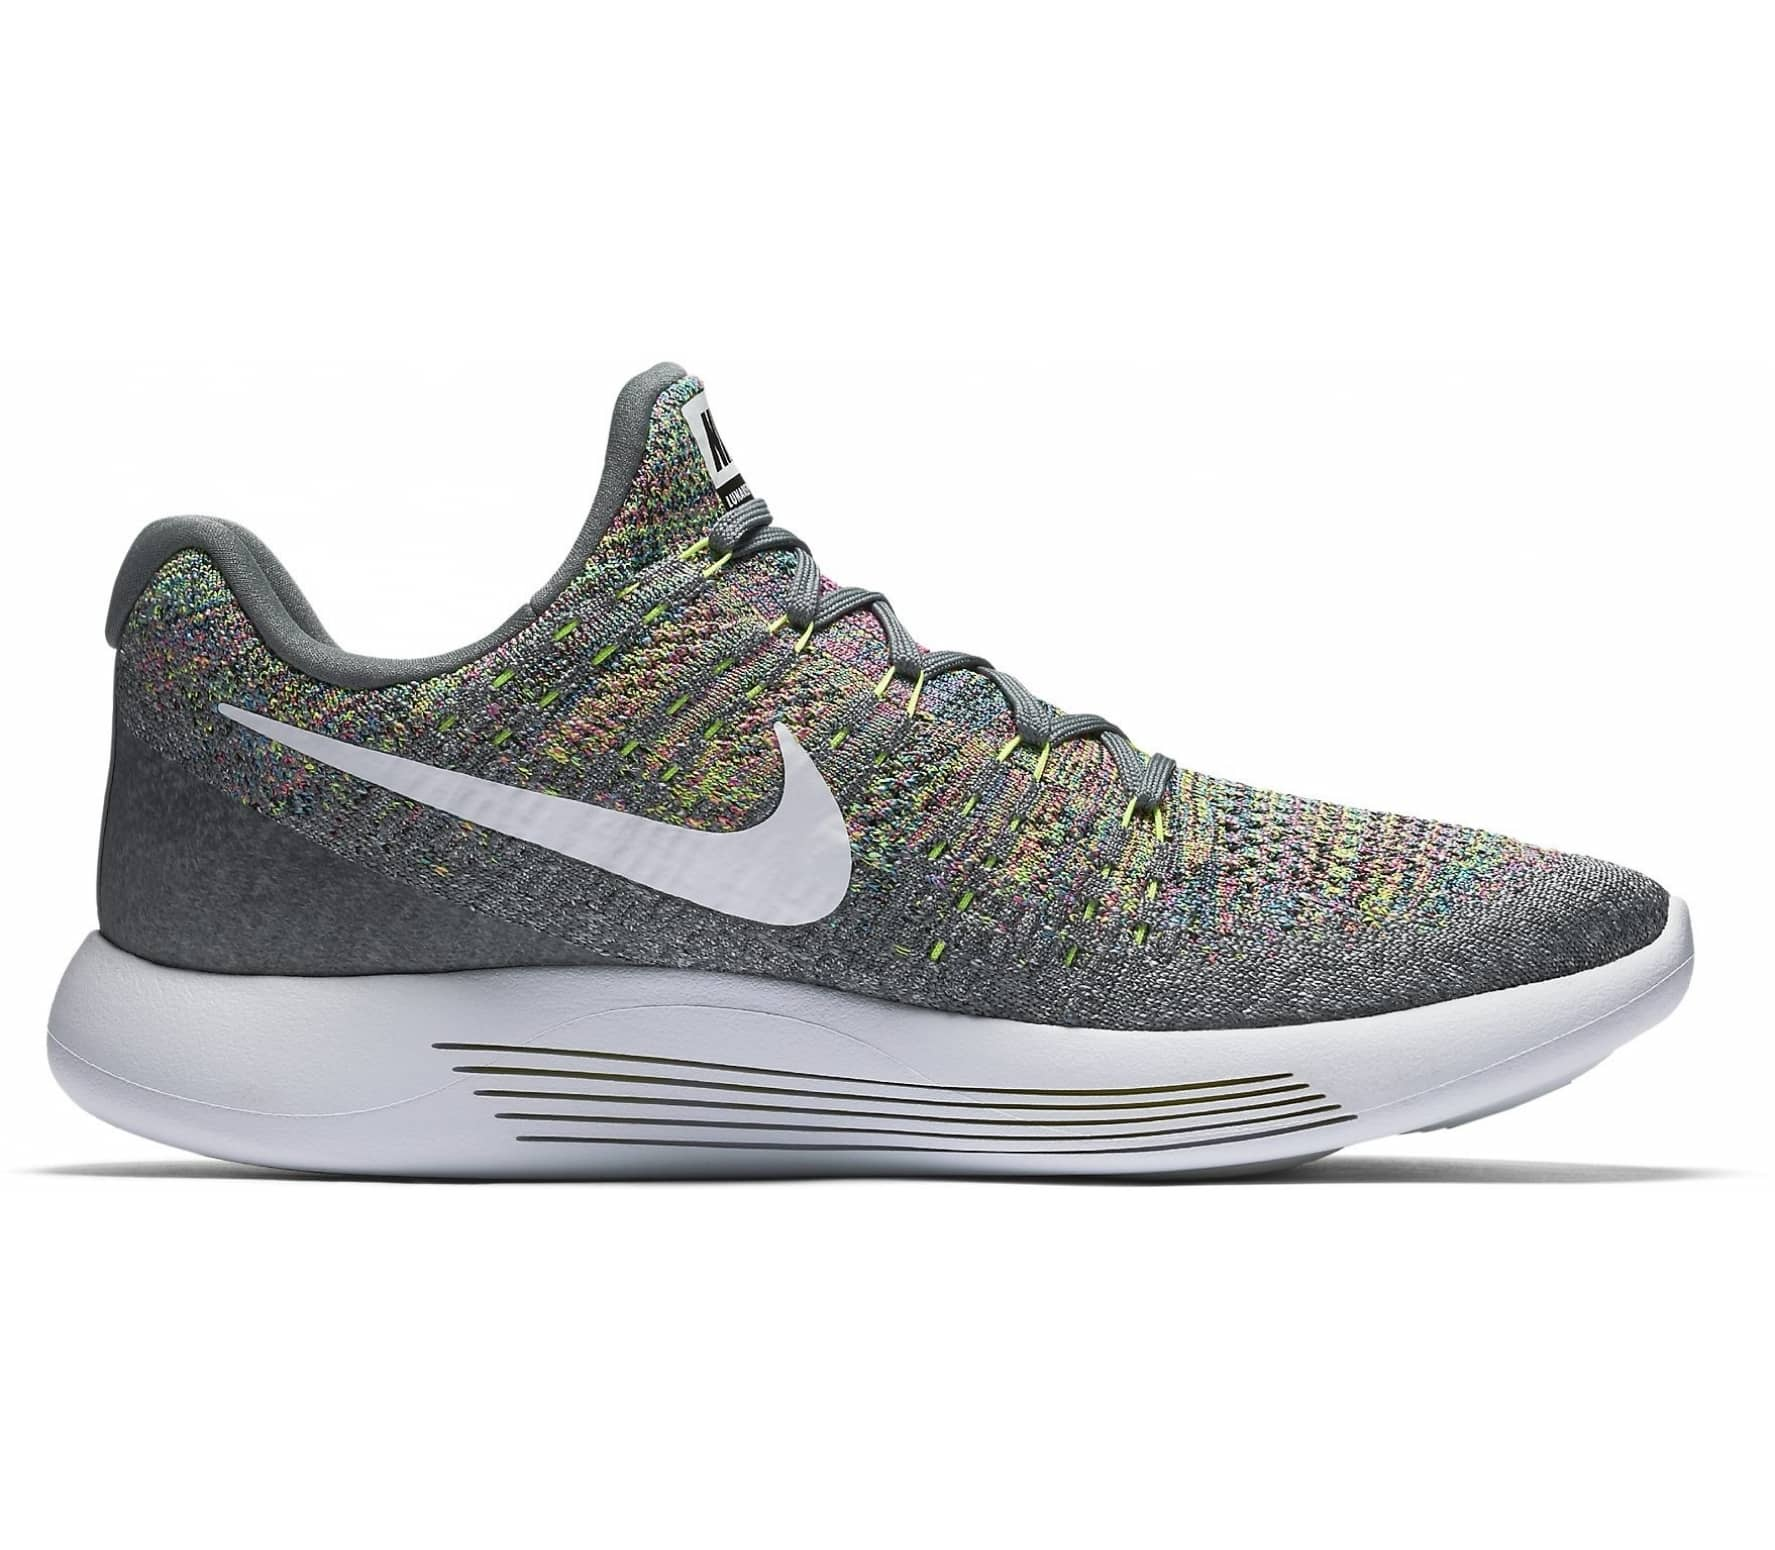 sports shoes 11676 fddba ... release date nike lunarepic low flyknit 2 hommes chaussure de course  gris jaune 8f8f3 ed1af